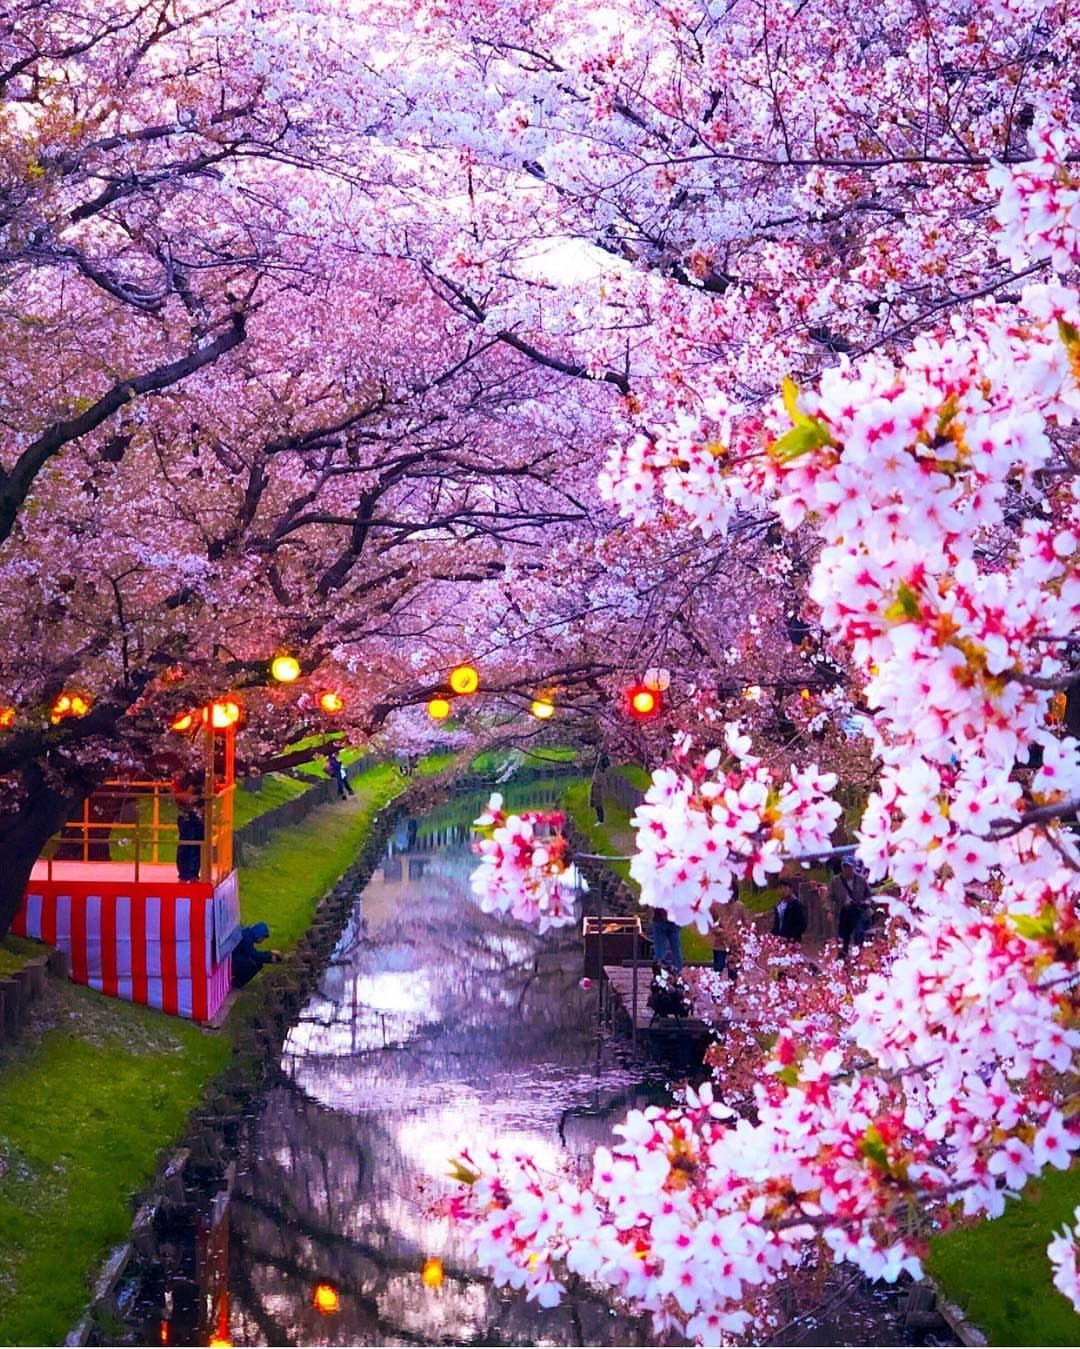 Cherry Blossoms In Saitama Japan Tag Your Friends Pictures By Capkaieda Wonderfu Beautiful Nature Tree Photography Cherry Blossom Japan